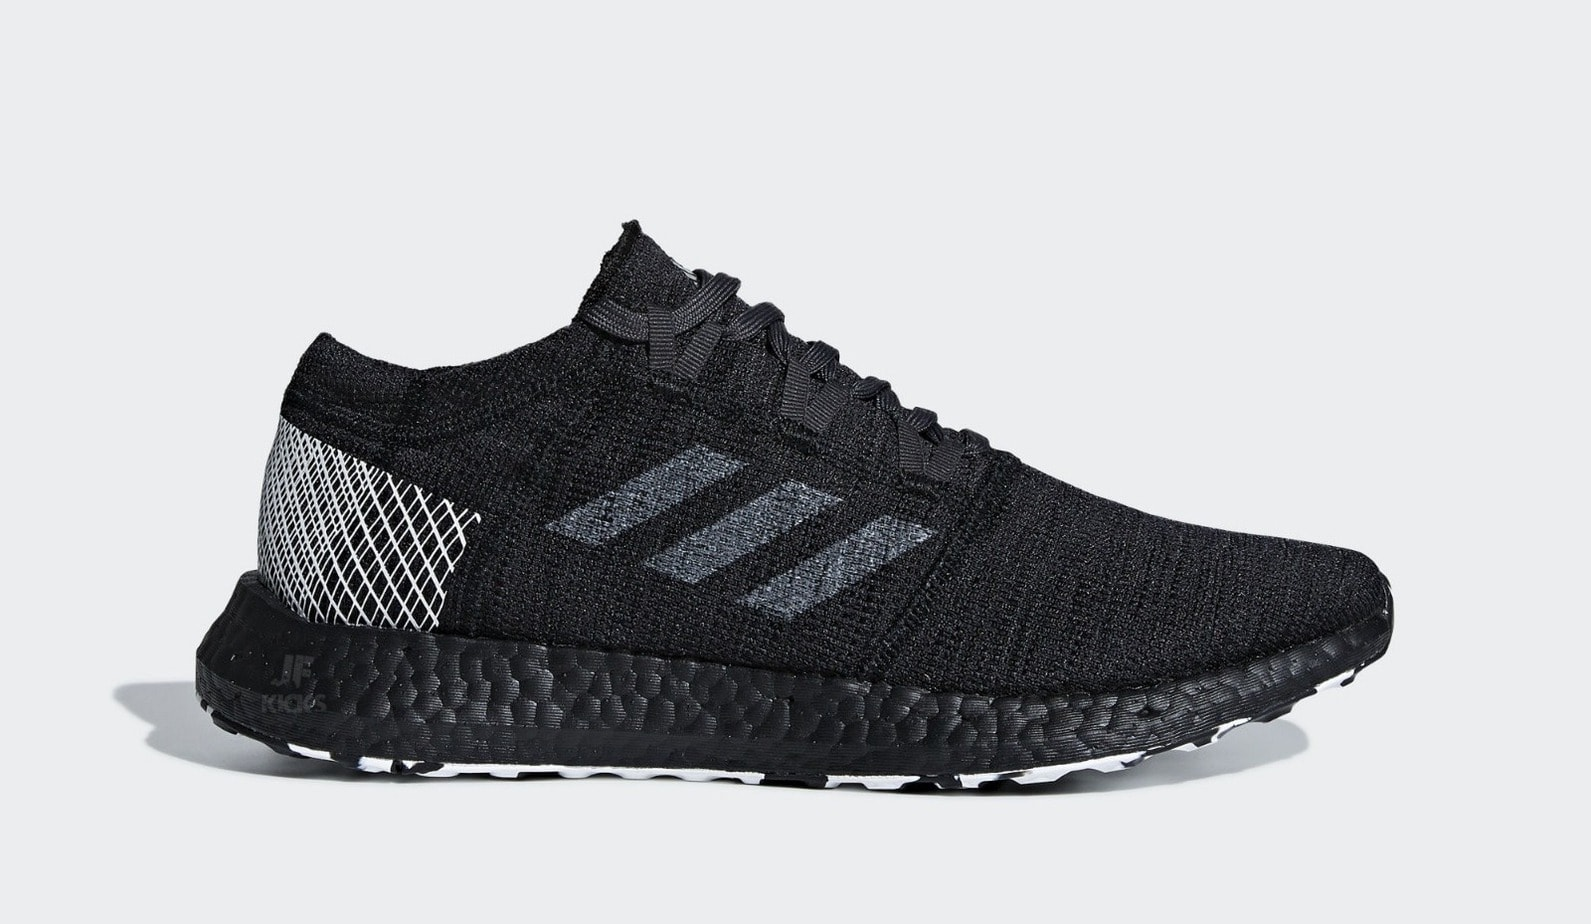 e1c6dd867f2b4 The adidas Pure Boost first burst onto the scene in 2015 as a lightweight